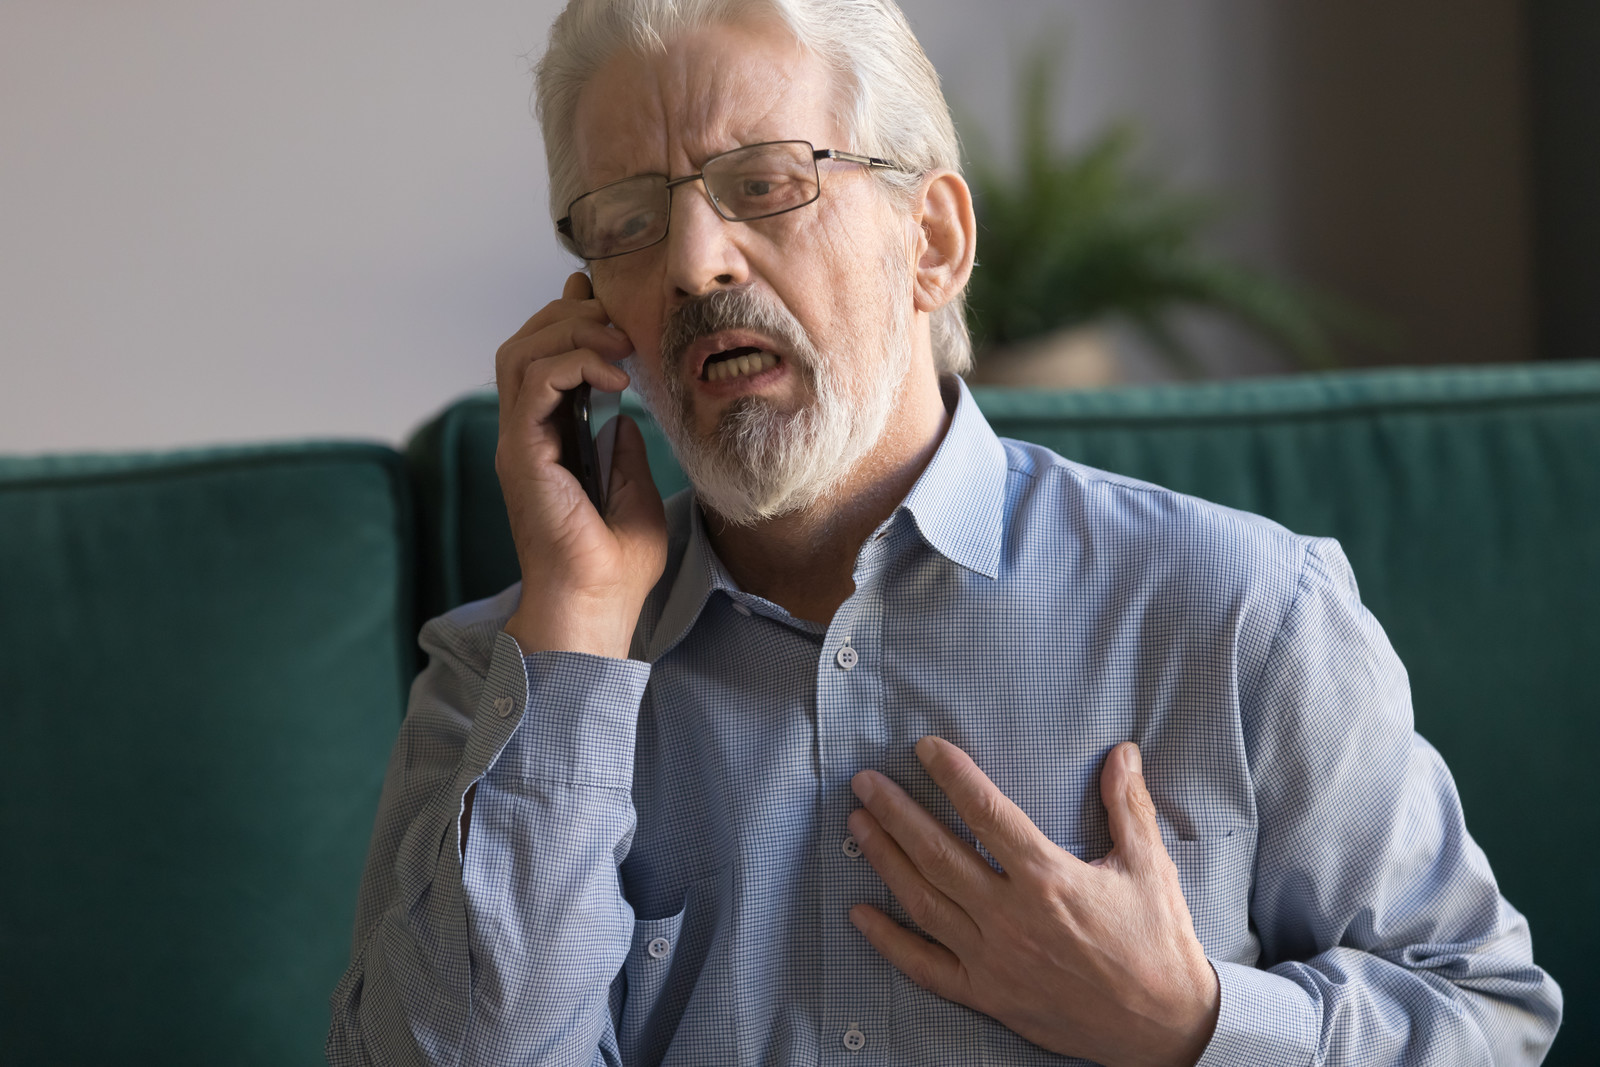 Older man sitting on couch looking distraught on the phone